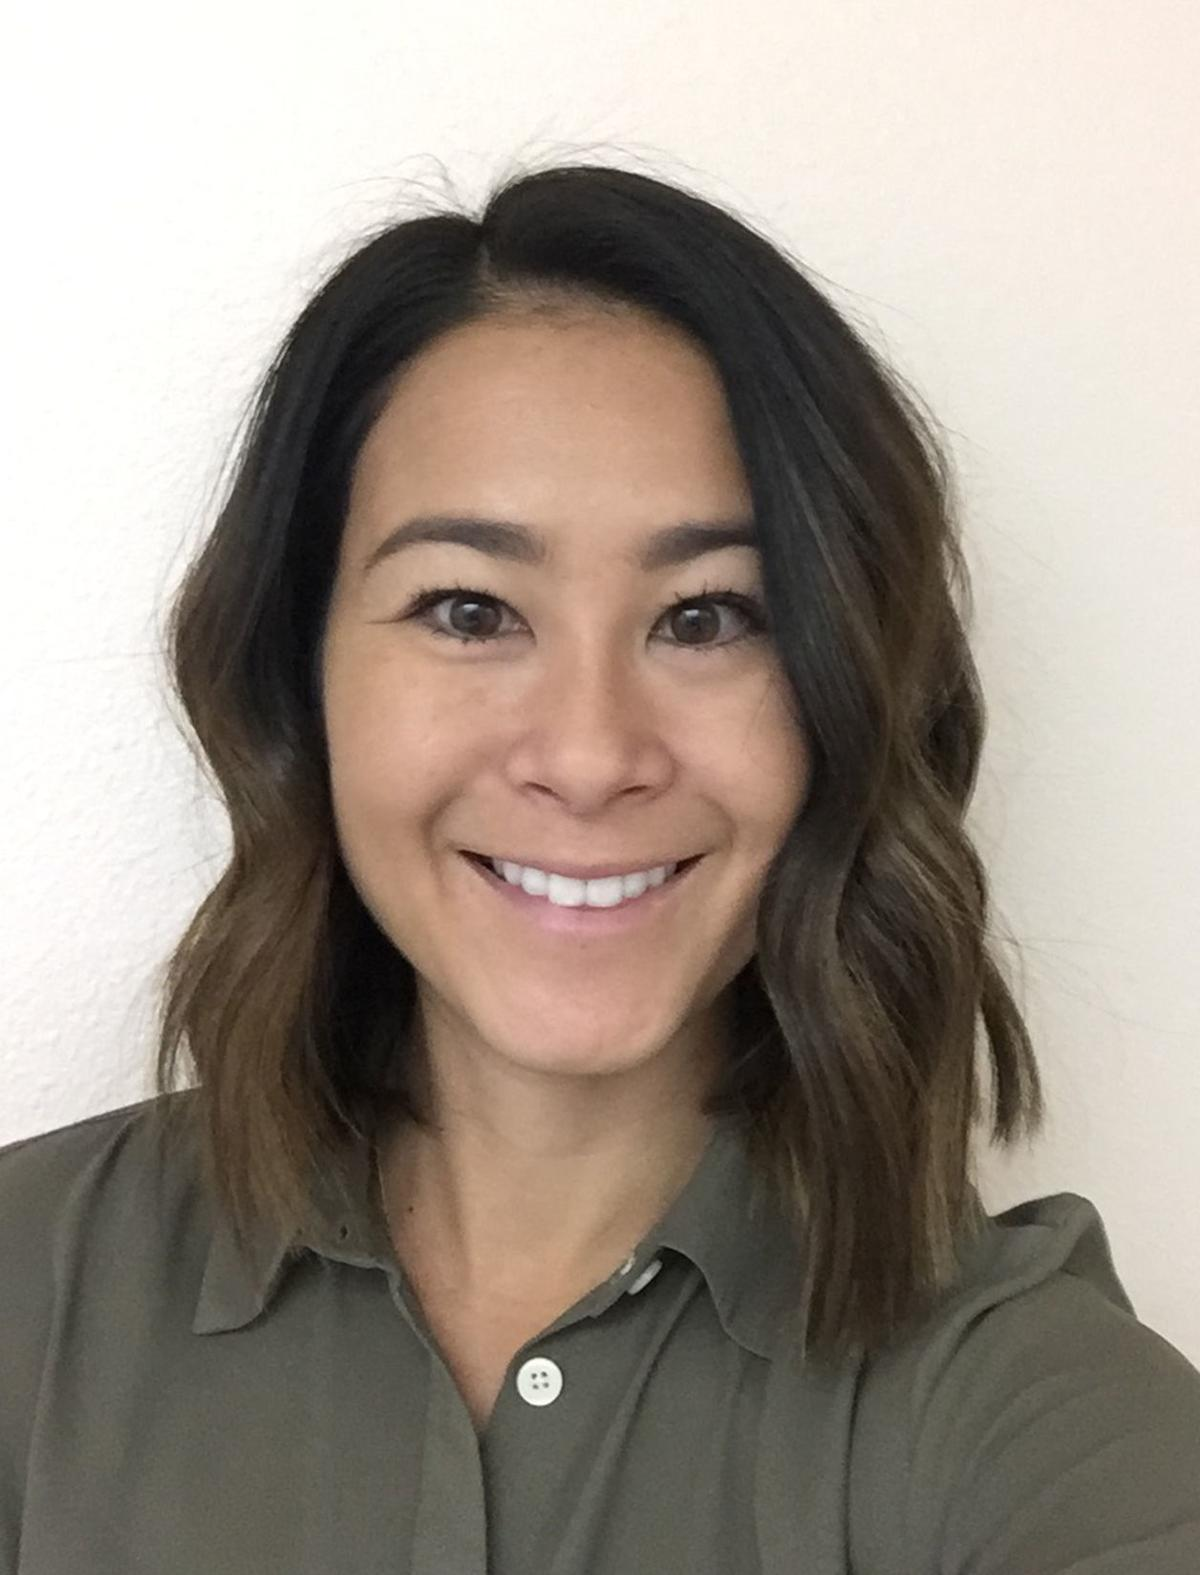 Cancer Answers: Kelly Tomita